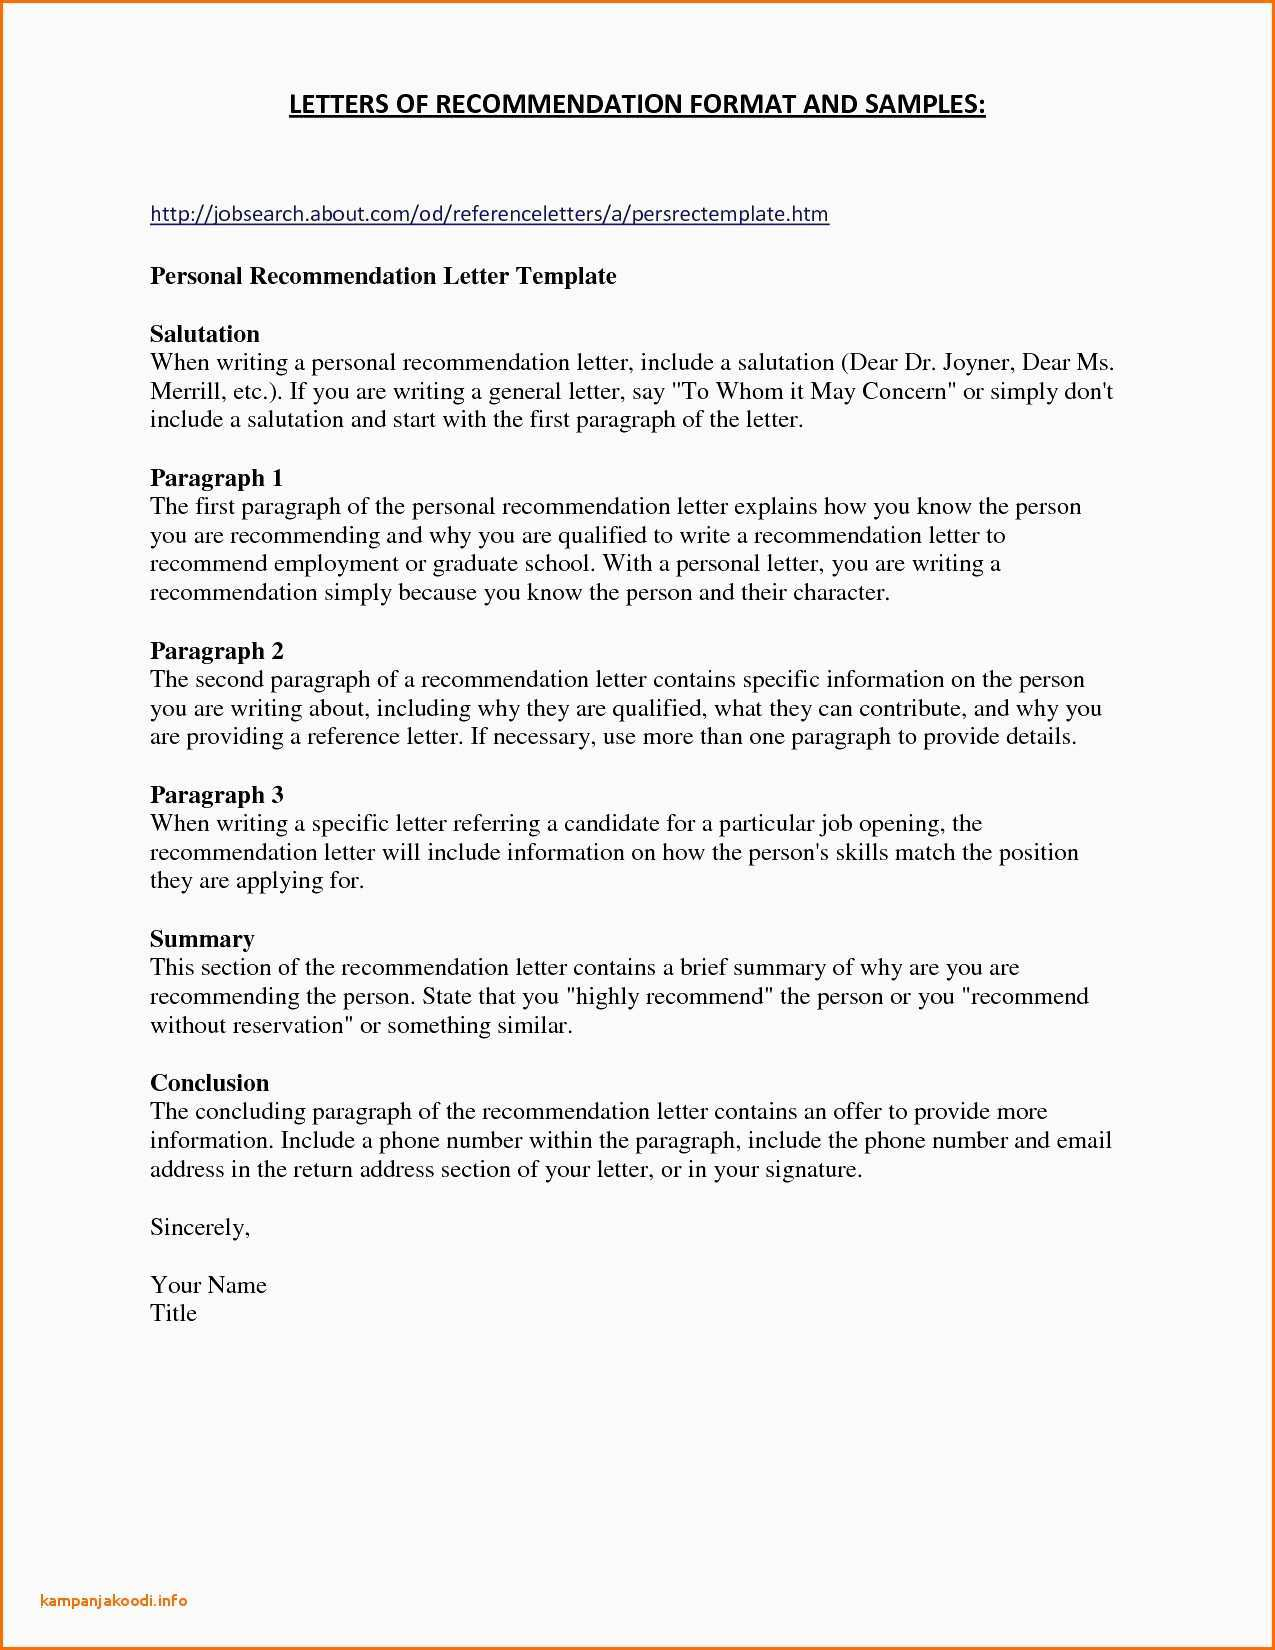 Career Fair Resume Template - Professional Resume Writing Service Reviews Resume Writing Services